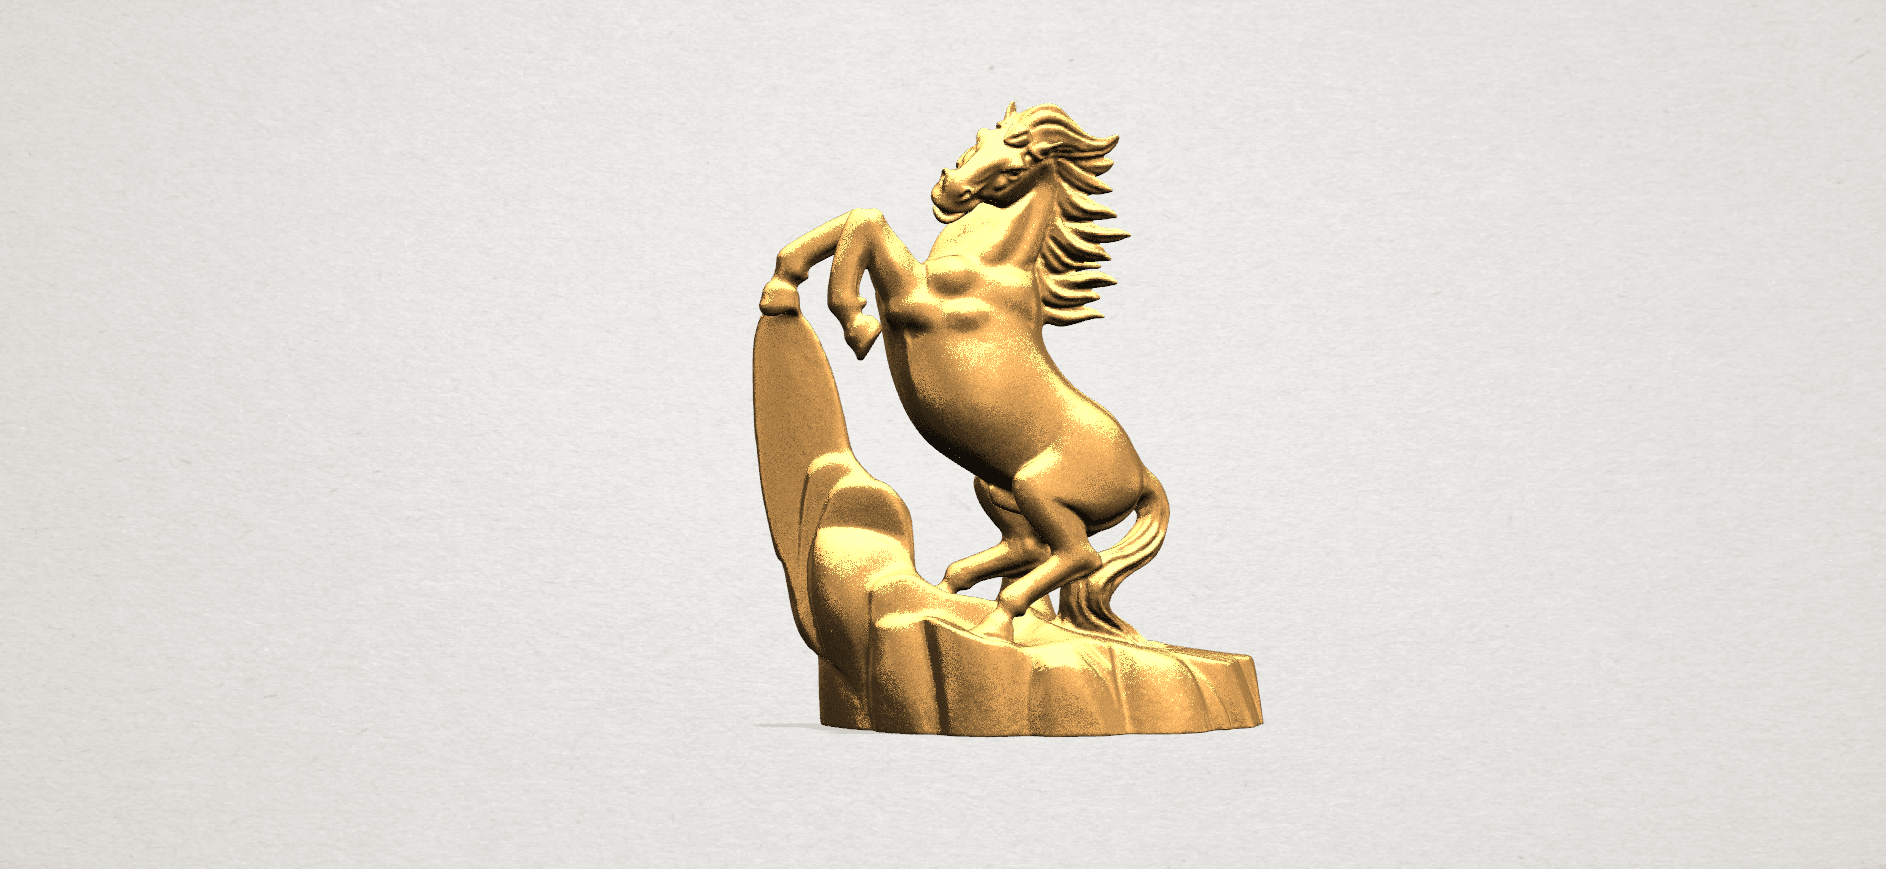 Horse - B01.png Download free STL file Horse 01 • 3D printing model, GeorgesNikkei